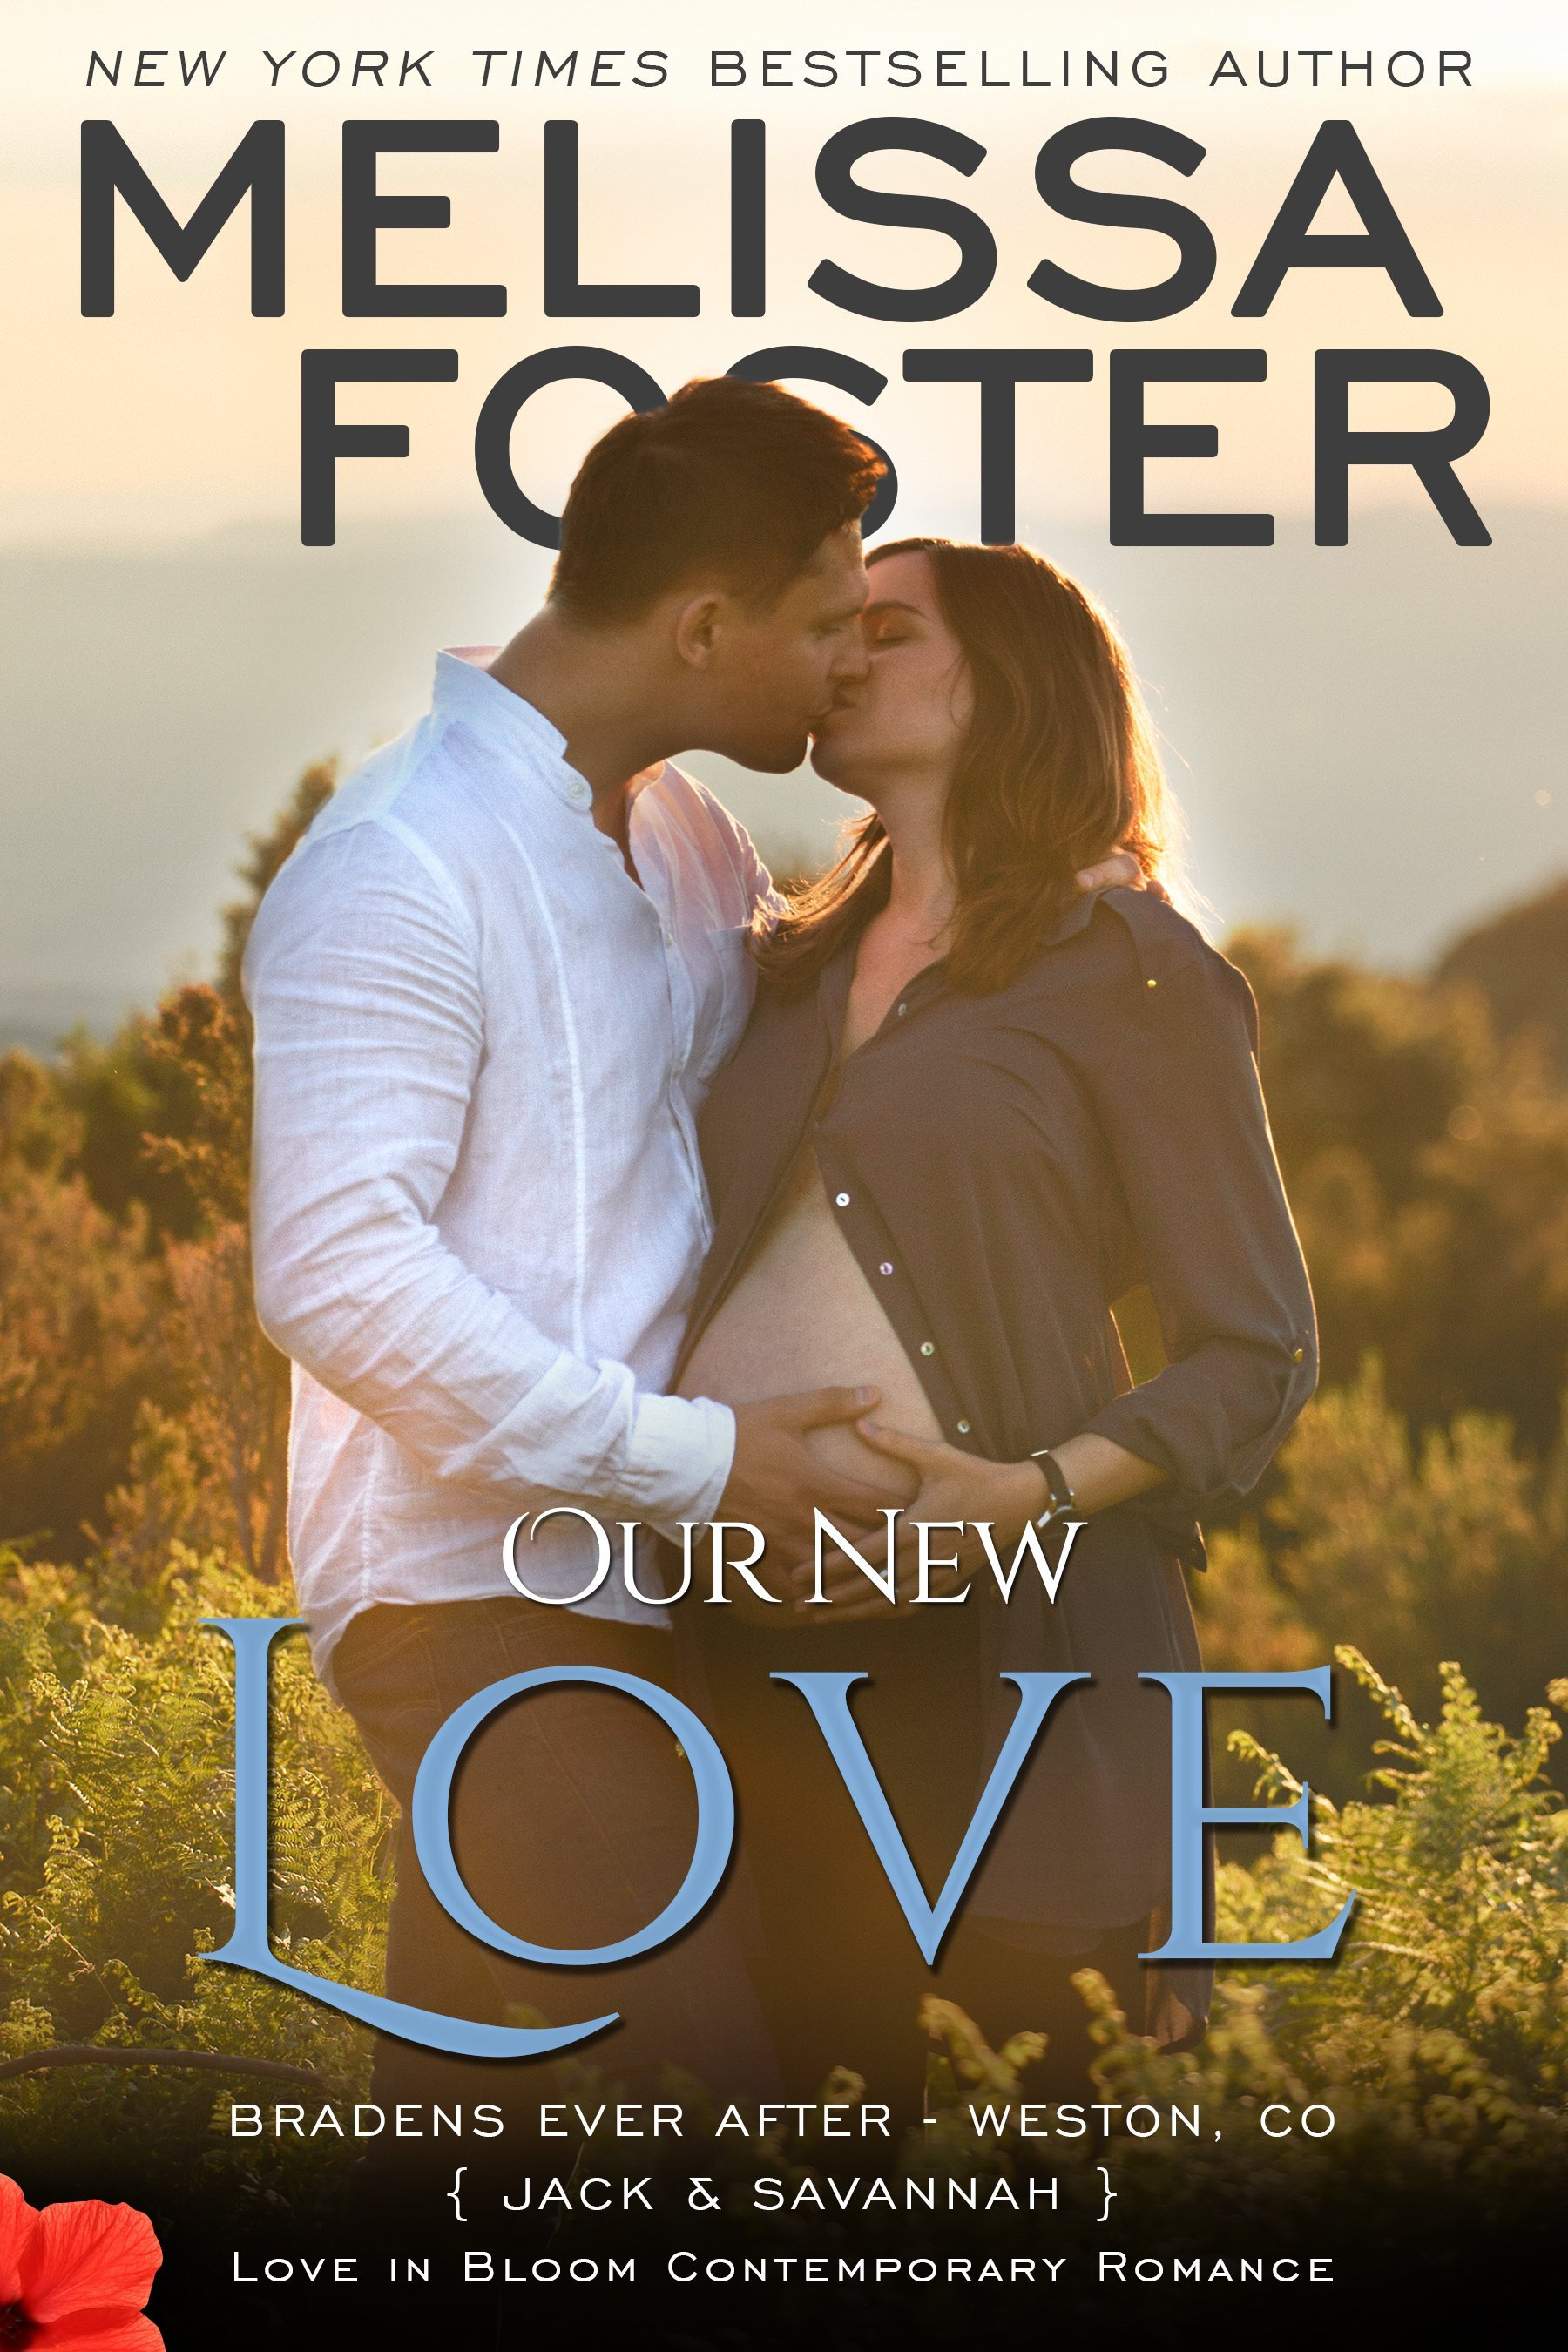 Our New Love by Melissa Foster a Love In Bloom Contemporary Romance